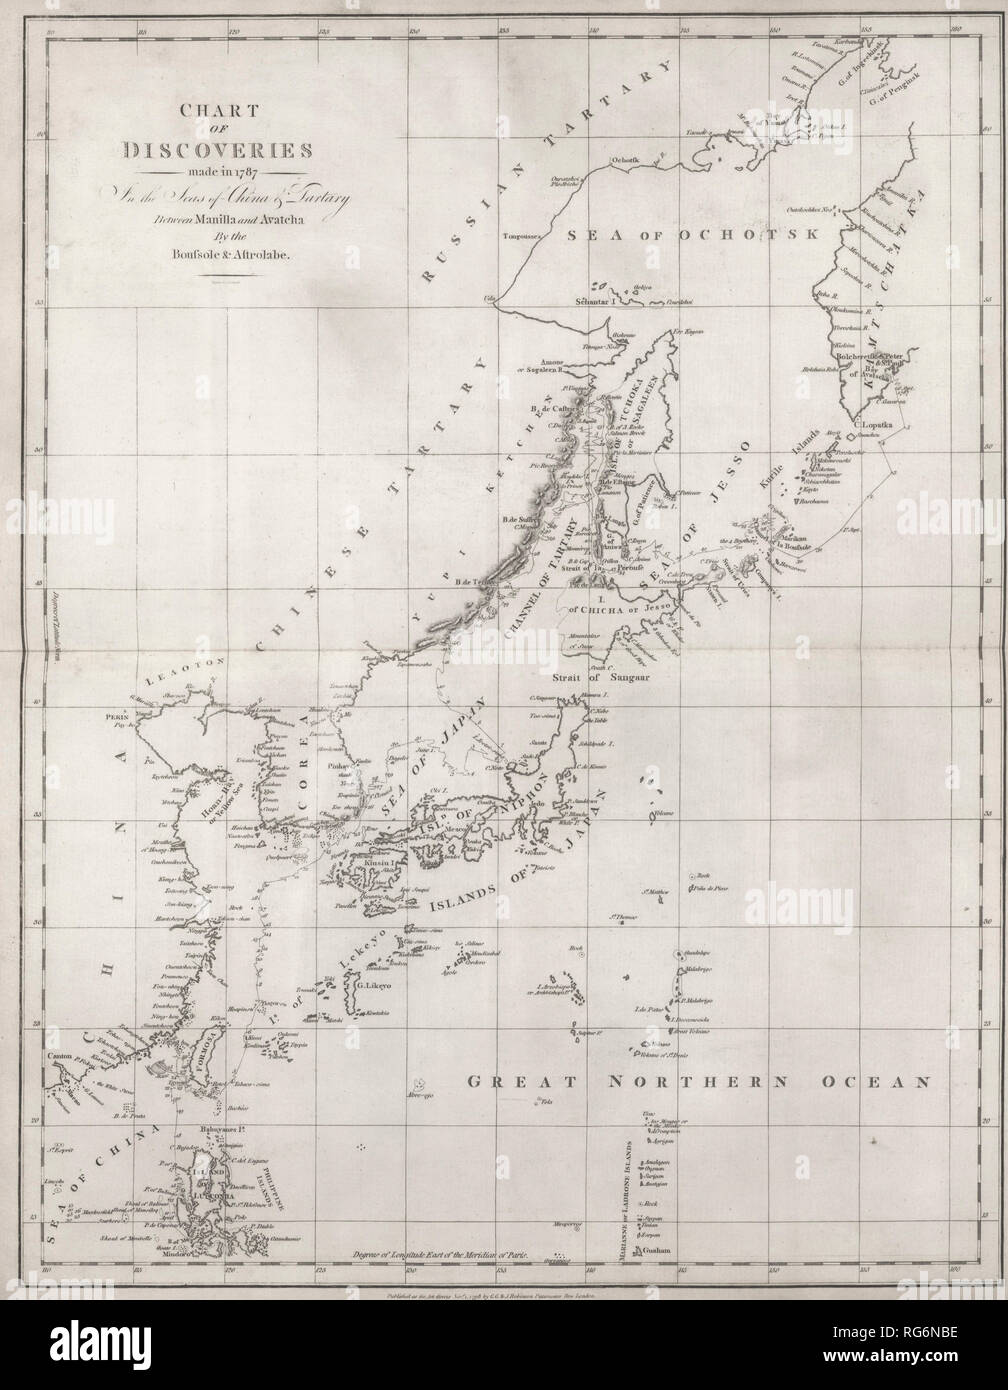 Chart of Discoveries - Discoveries made in 1787 In the Seas of China and Tartary between Manila and Avacha - La Perouse - Stock Image